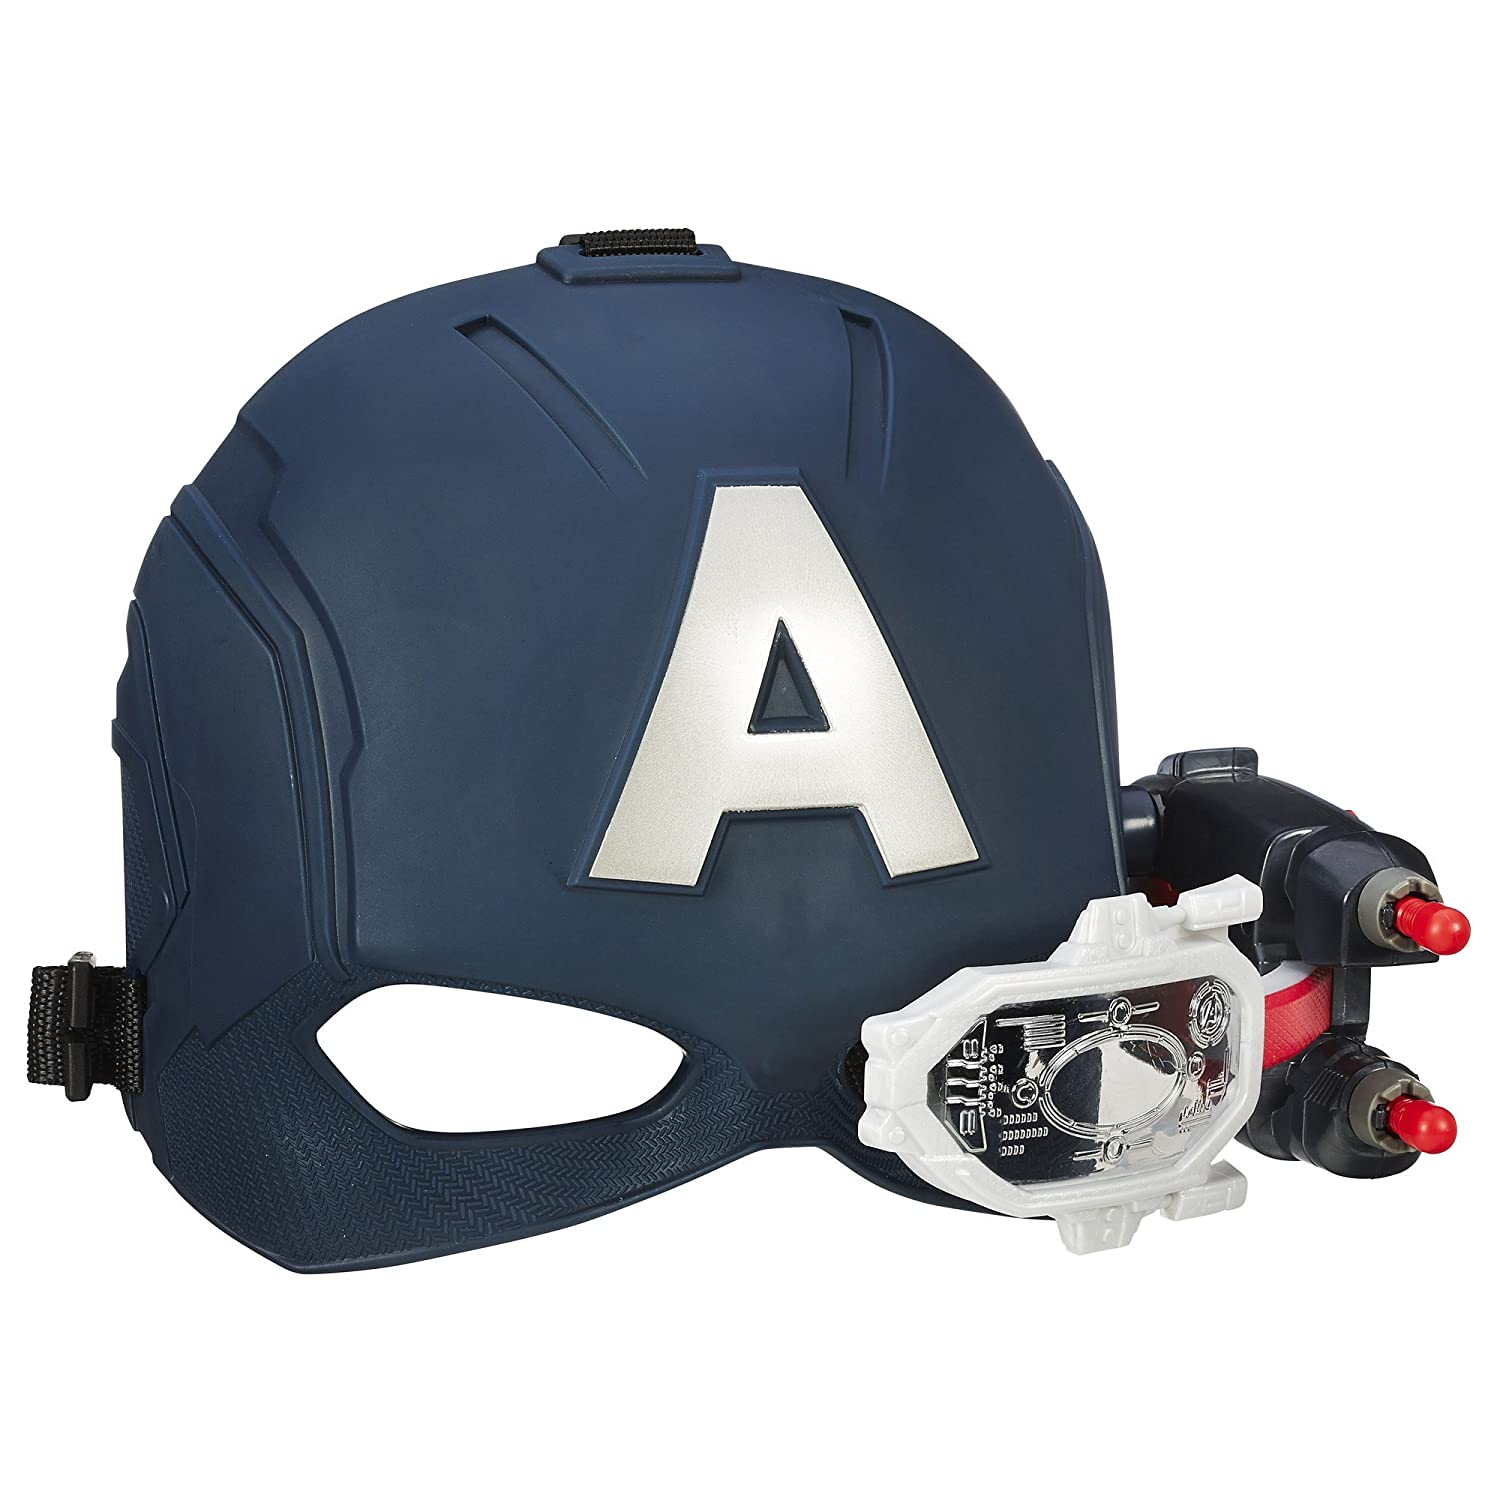 Marvel Captain America: Civil War Scope Vision Helmet Hasbro B5787AS0